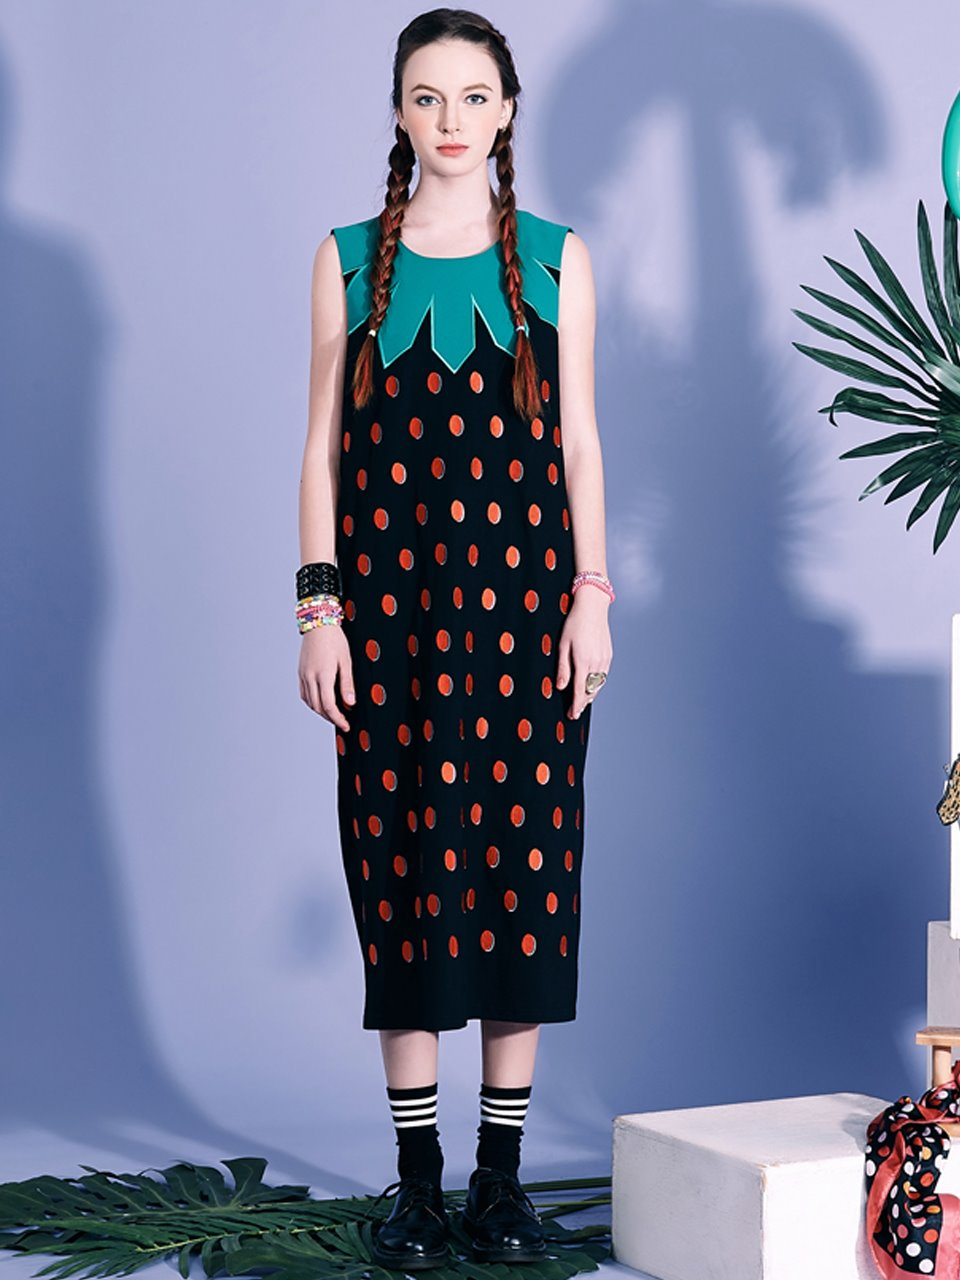 VVV STRAWBERRY EMBROIDERED DRESS - BLACK